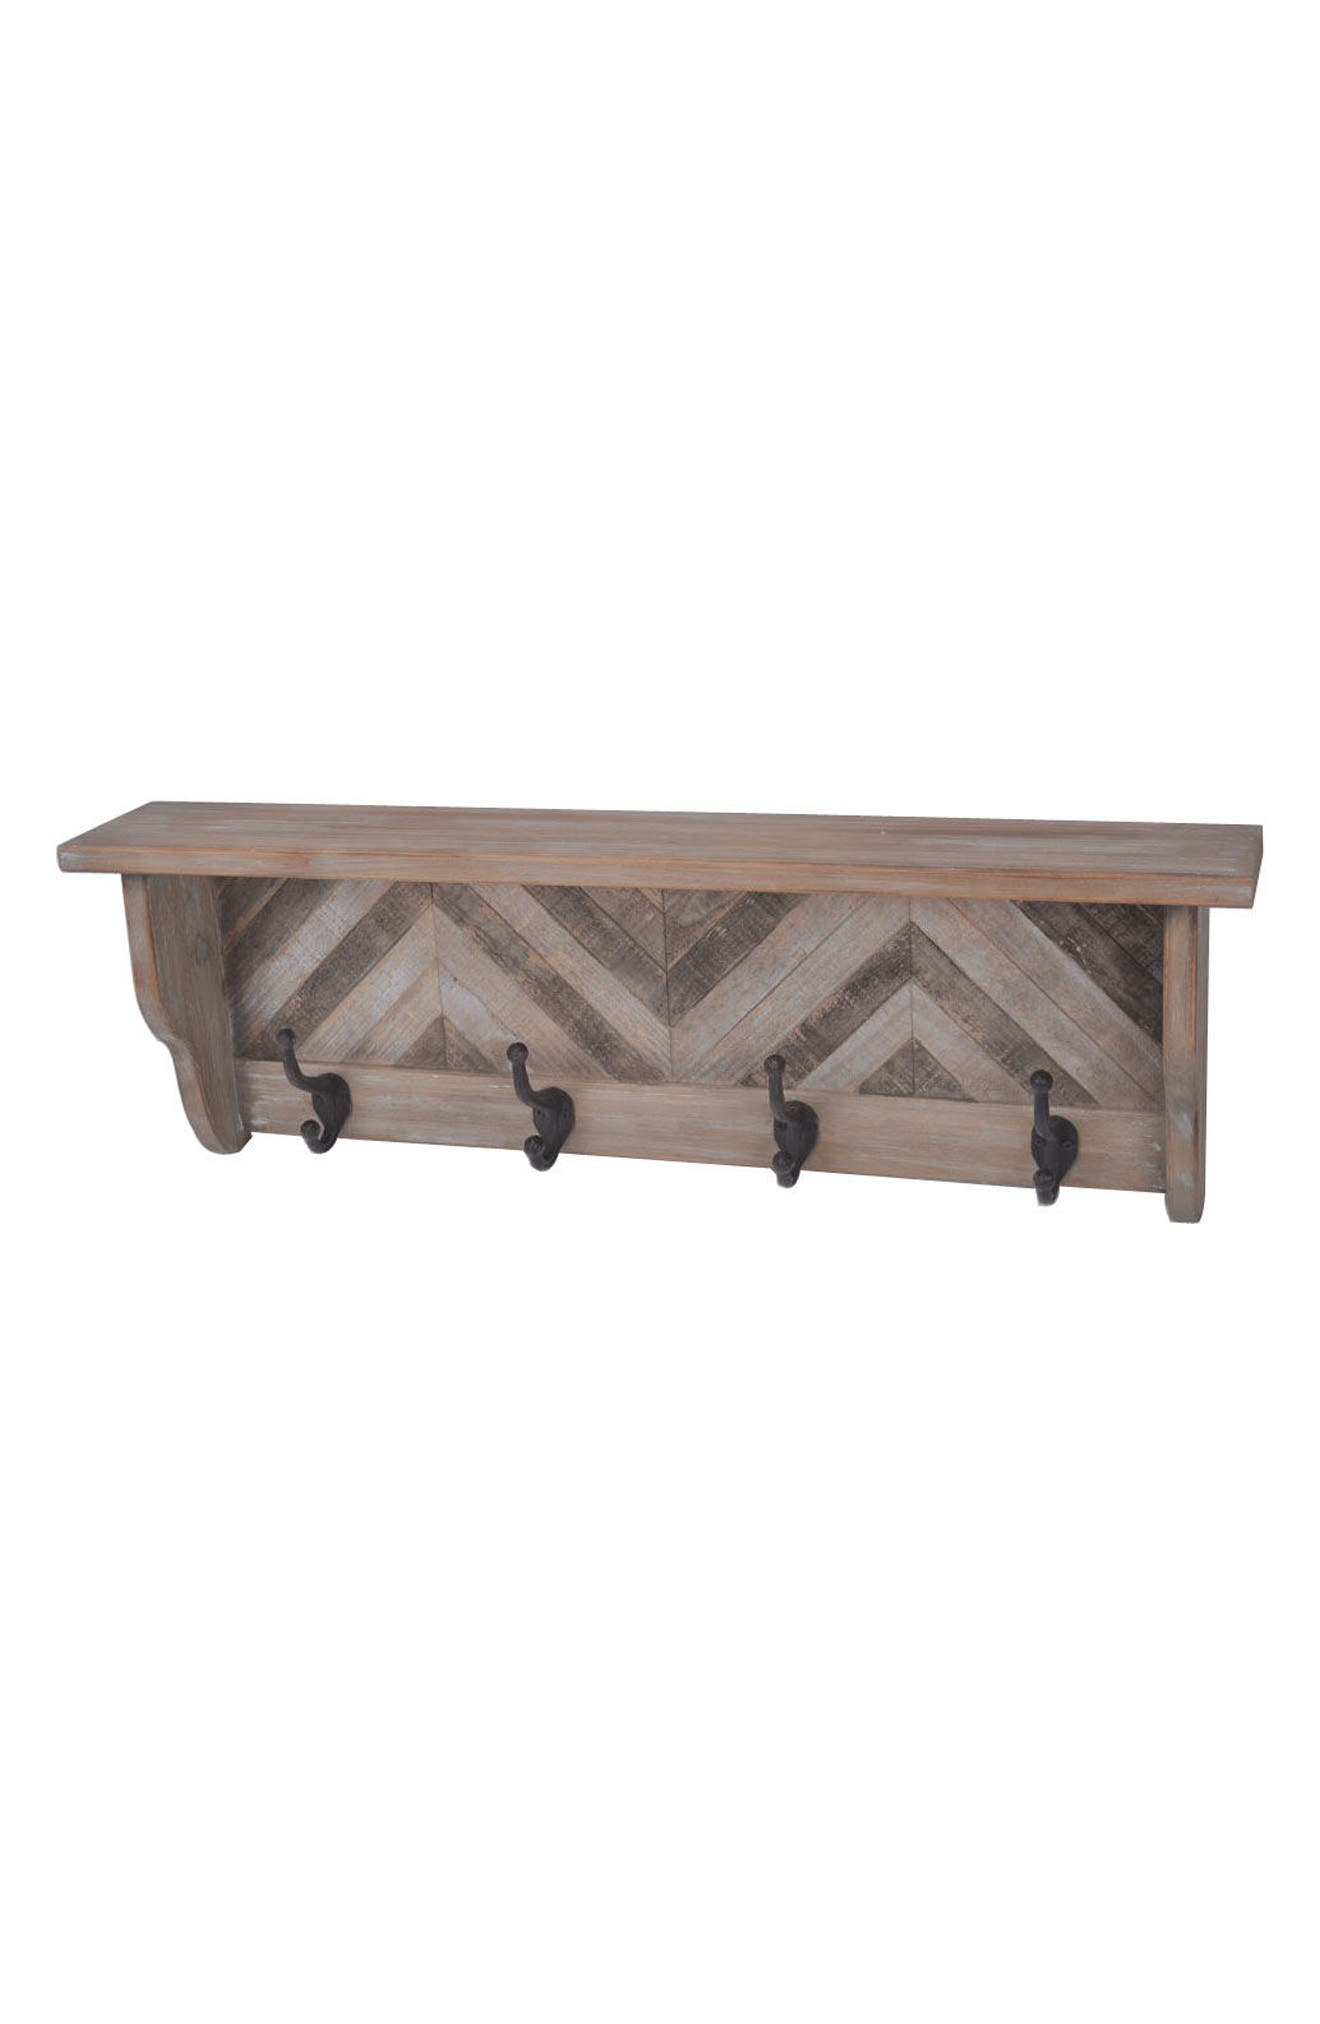 Alternate Image 1 Selected - Crystal Art Gallery Wooden Wall Shelf with Decorative Hooks